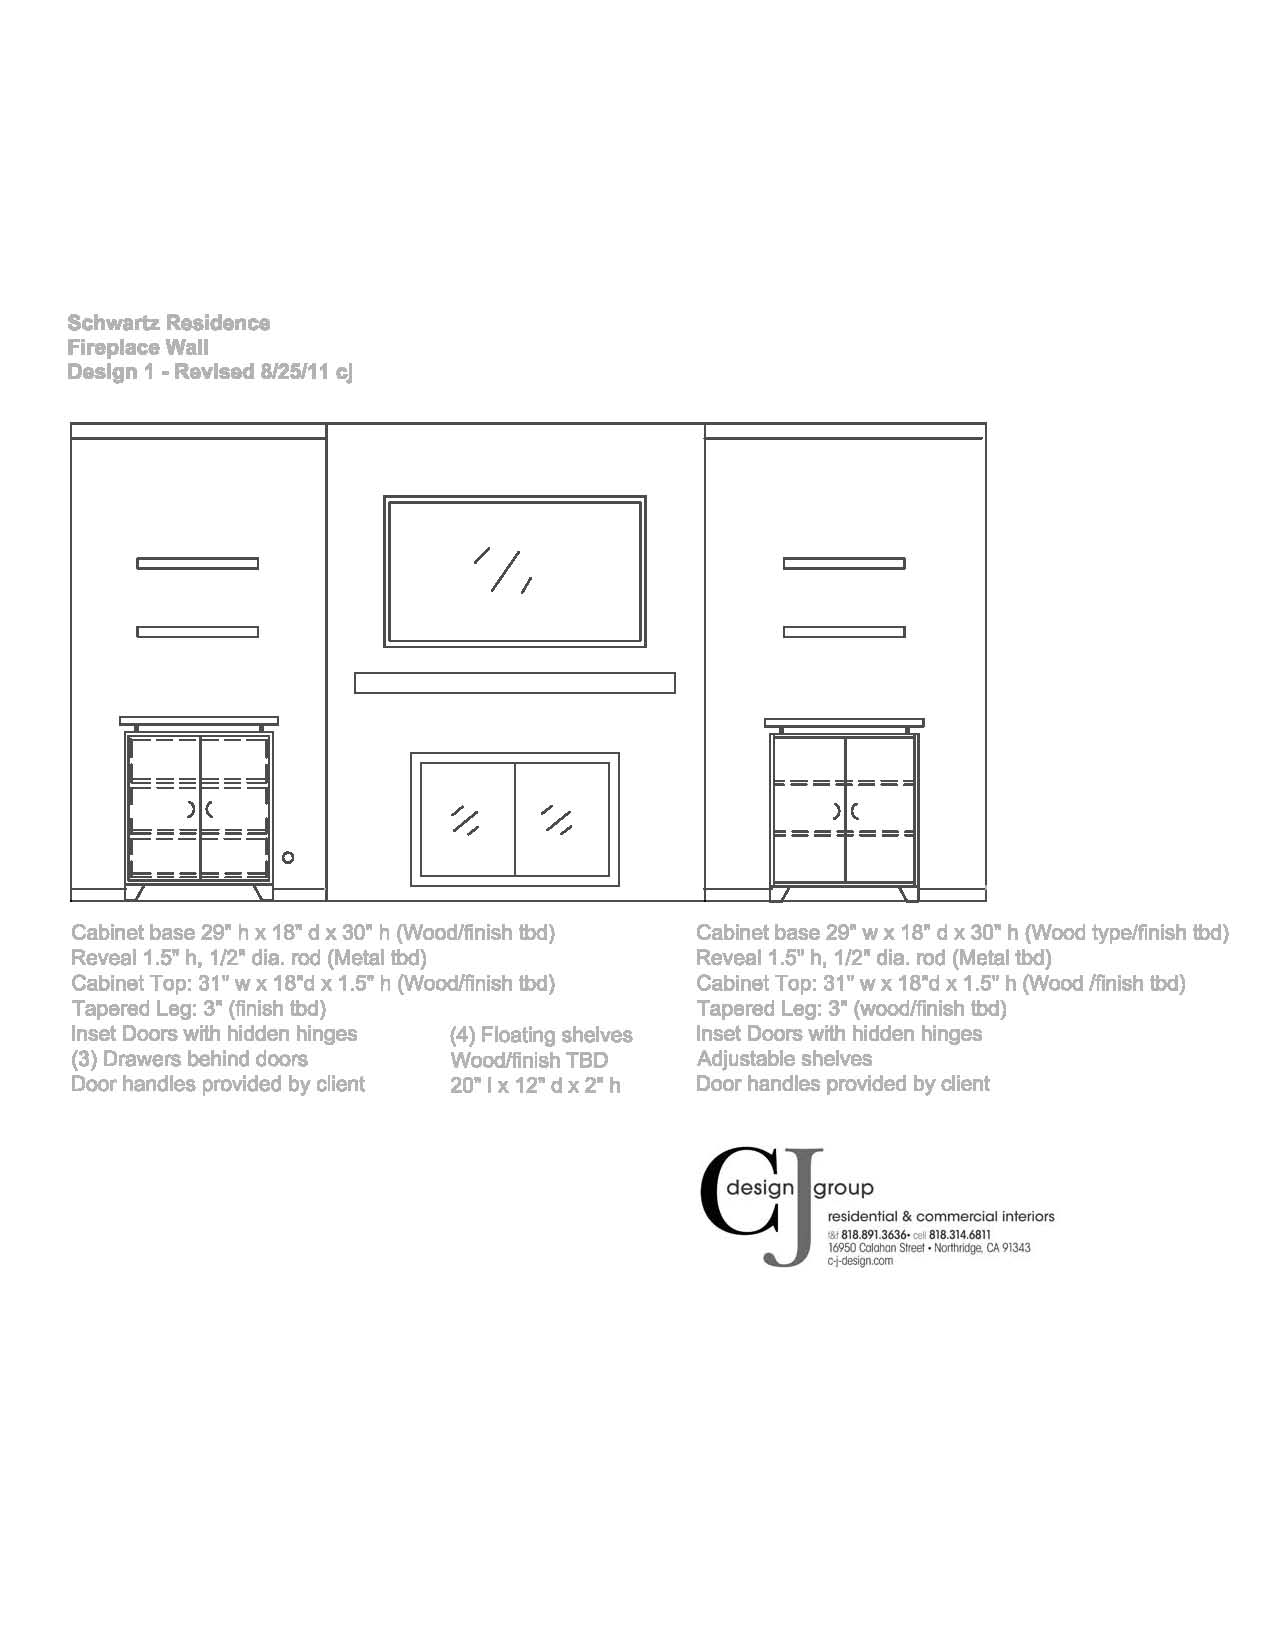 Concept design wall elevations